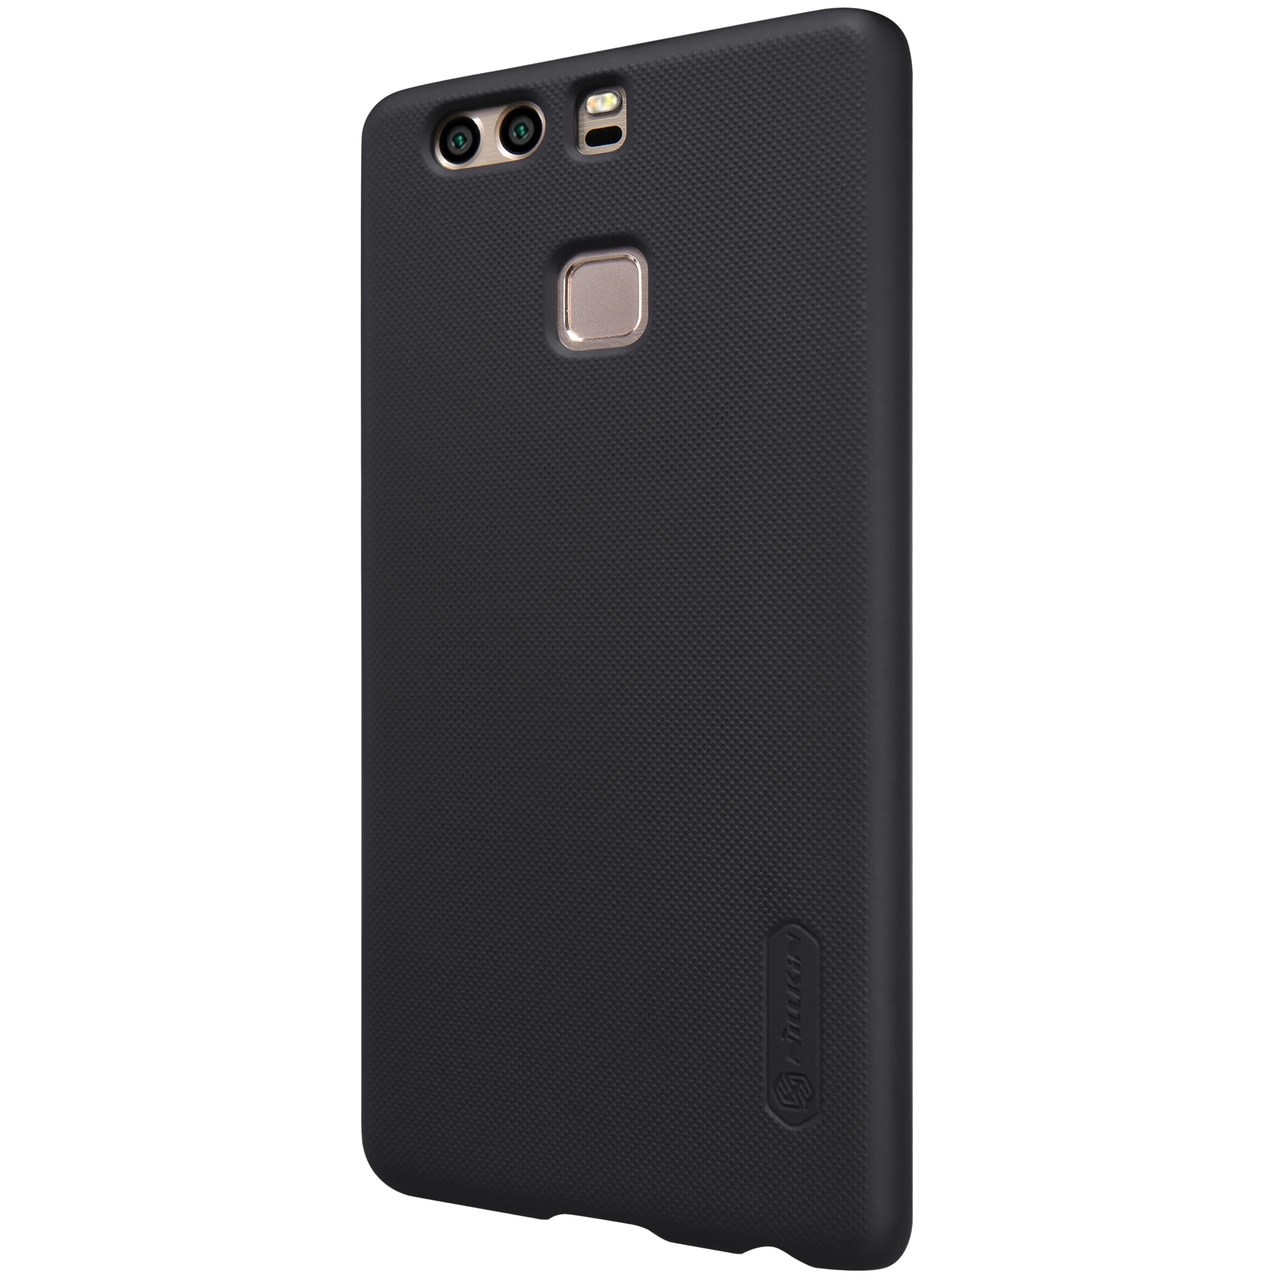 Huawei P9 Frosted Shield Hard Back Cover by Nillkin